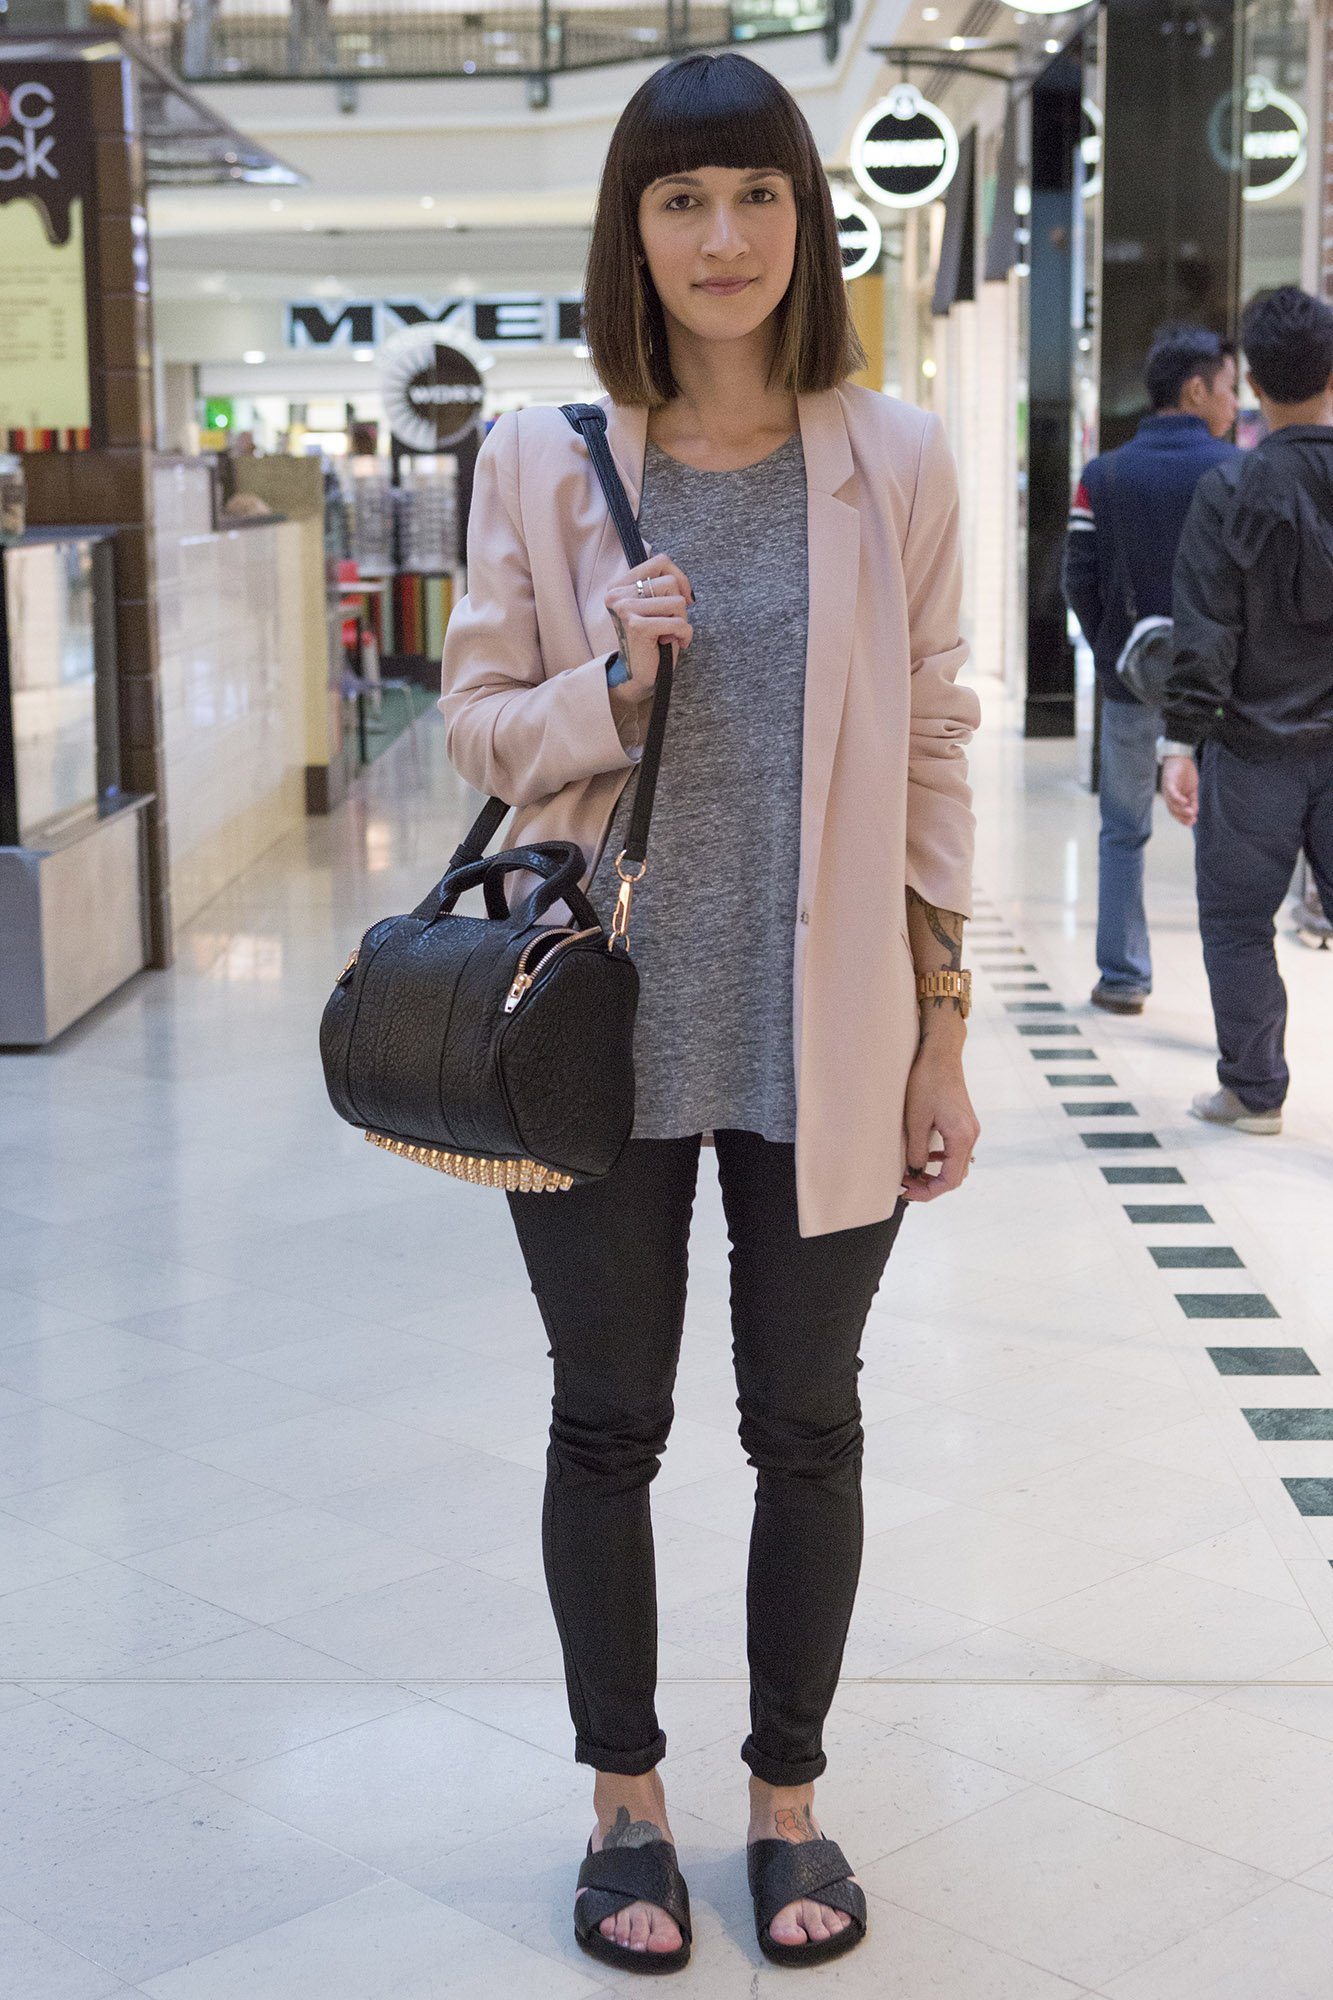 Perth Street Style | Karringyup Shopping Centre